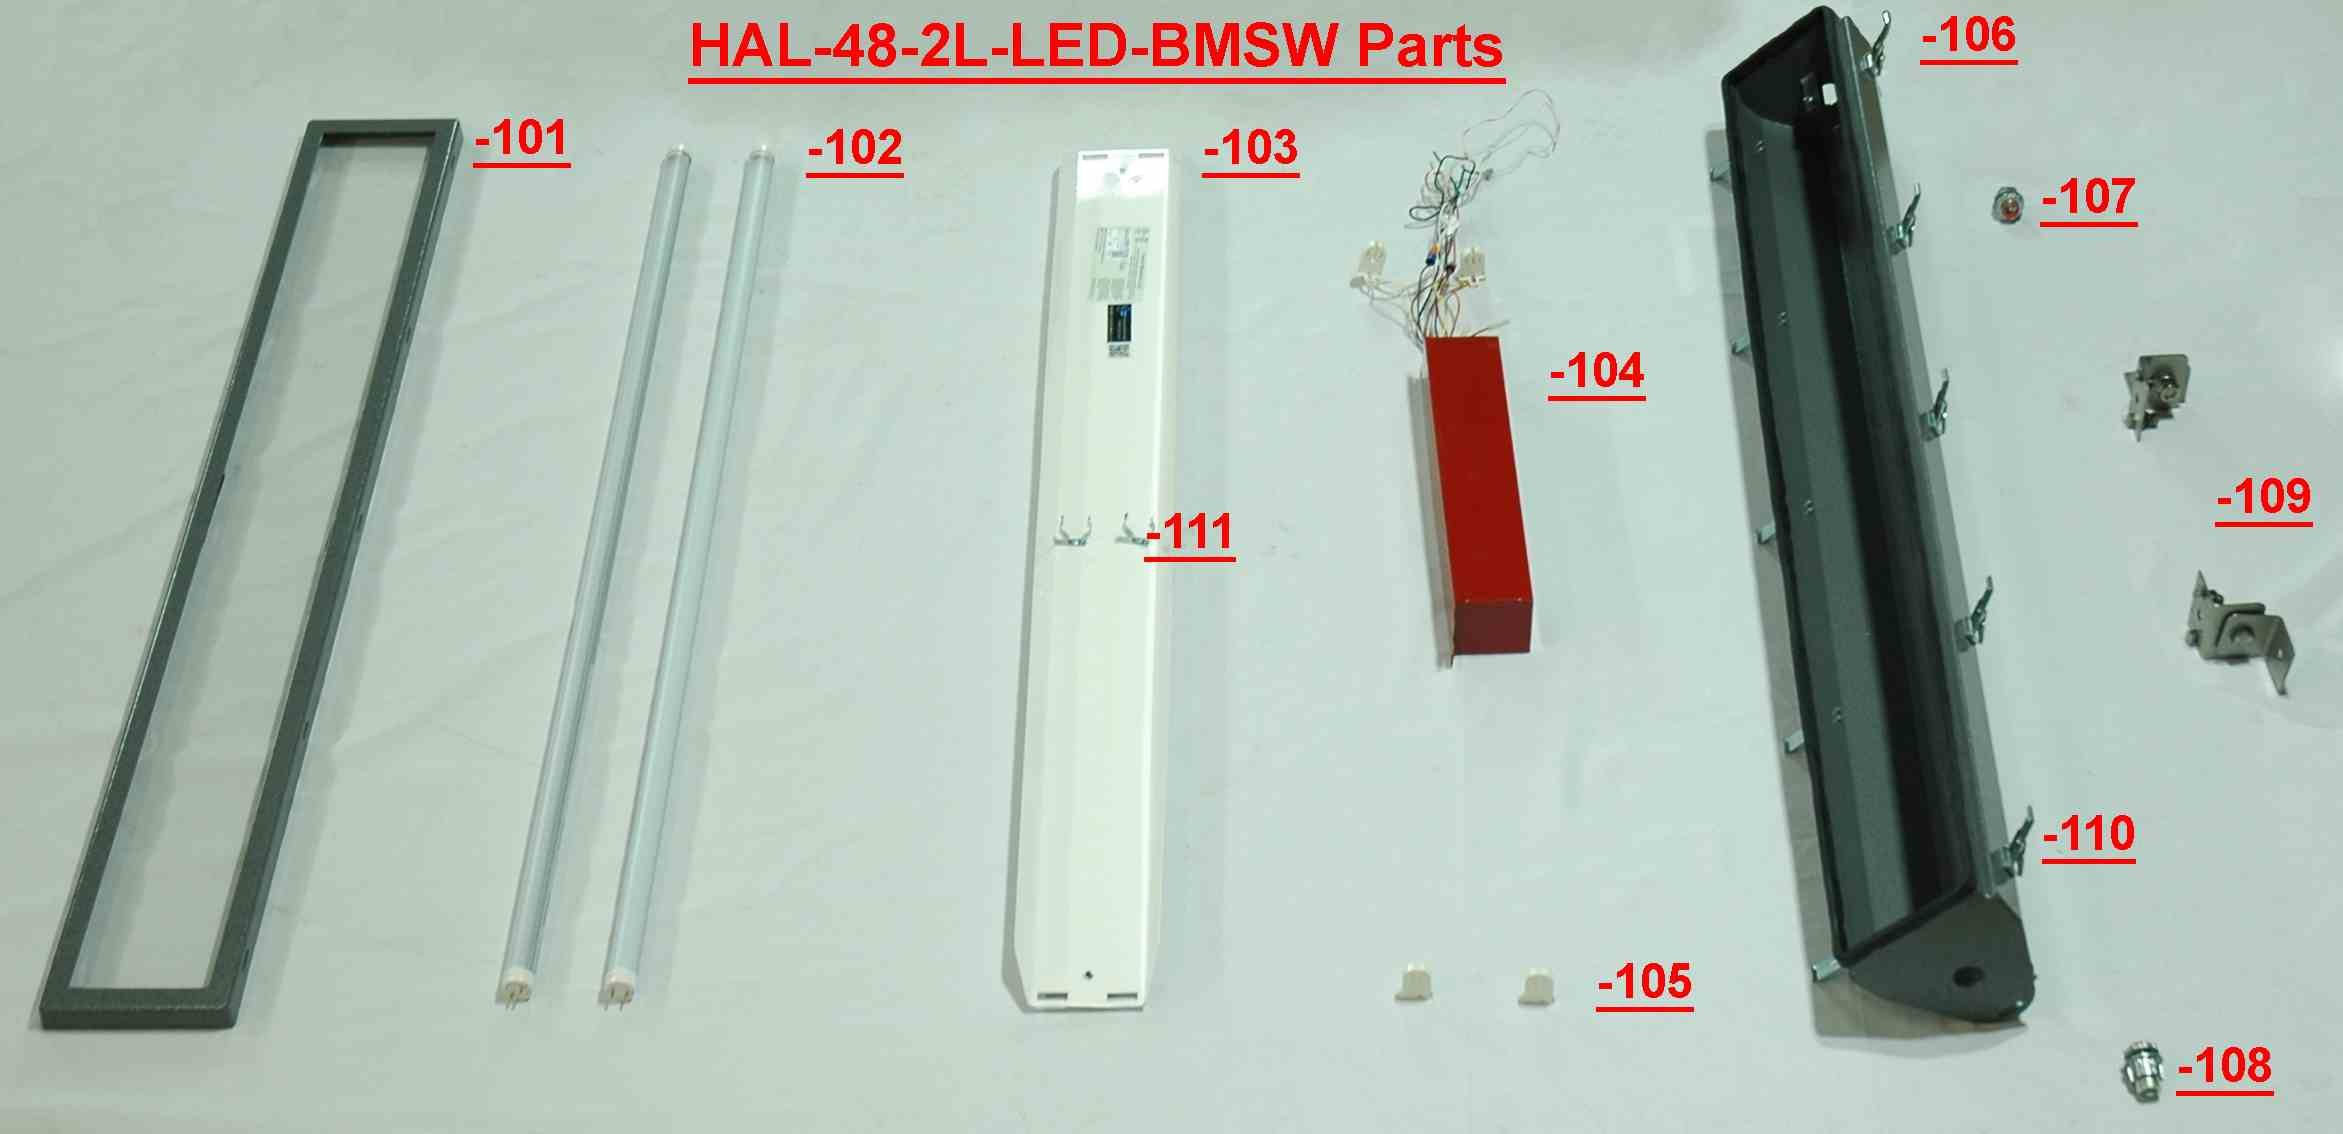 Replacement Stainless Steel Latch for HAL-48-2L-LED-BMSW Hazardous Location LED Light Fixture